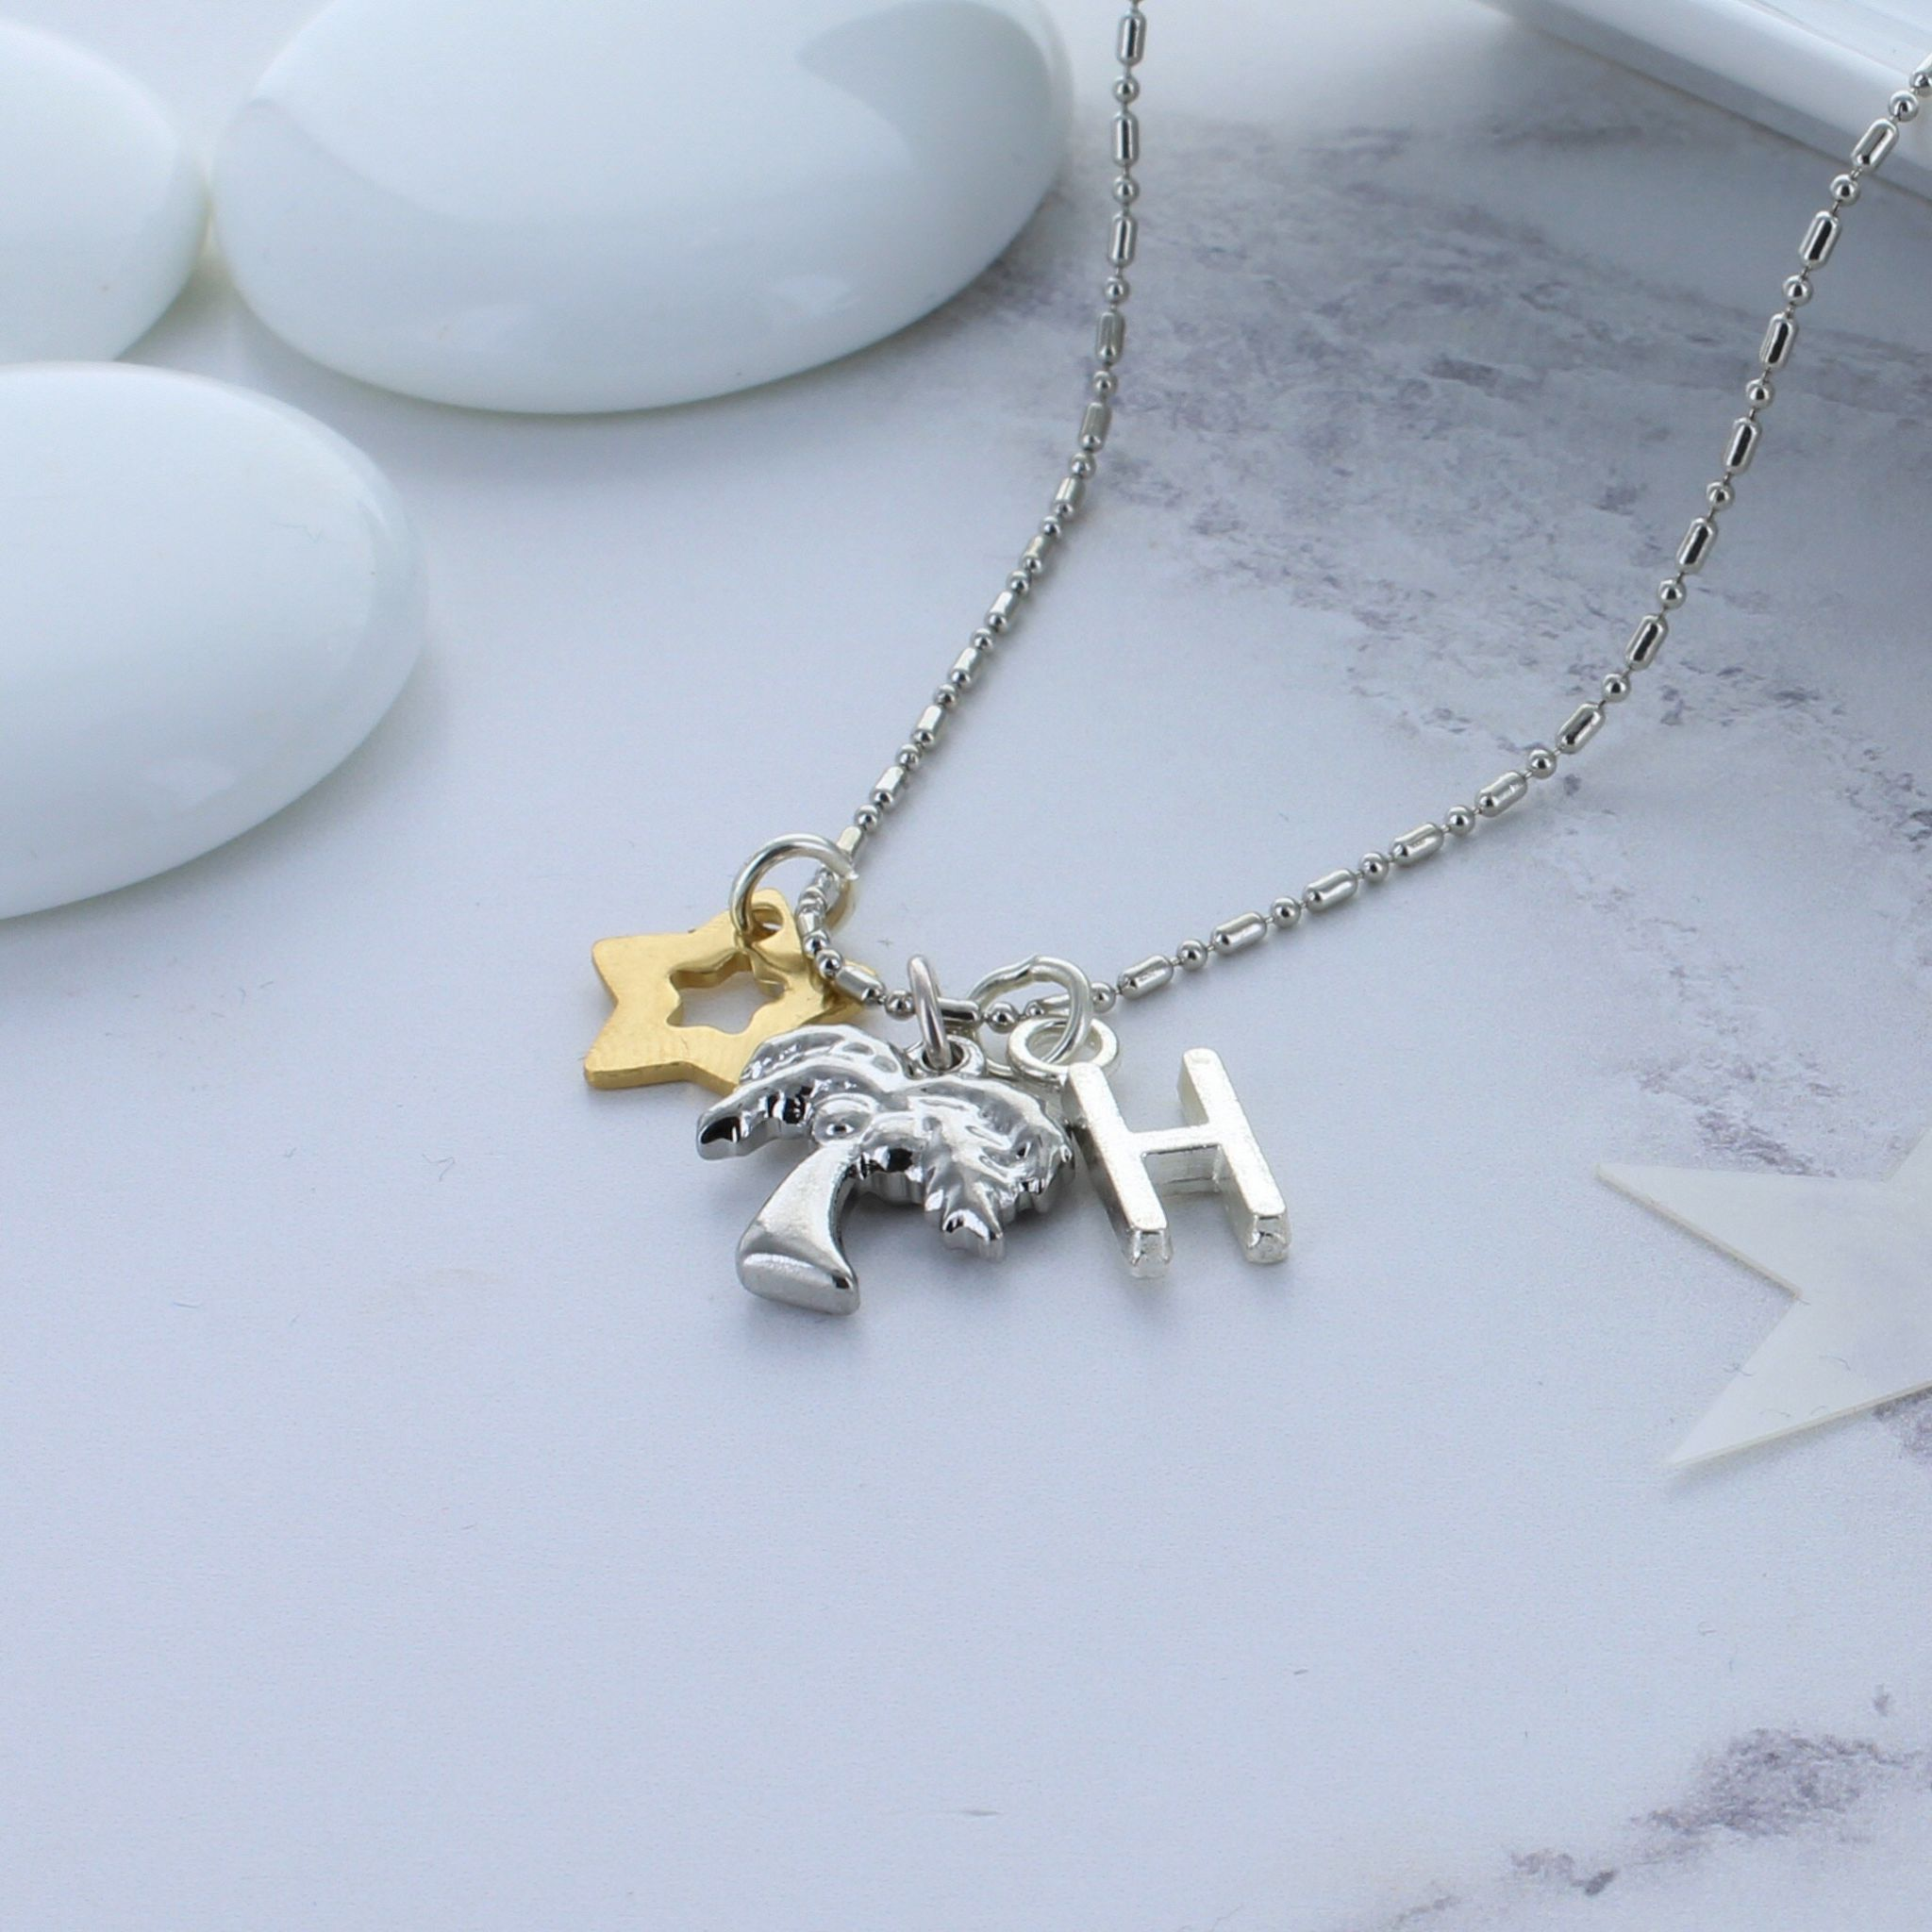 d2487d64c2f kids-personalised-palm-tree-necklace-296-p.jpg